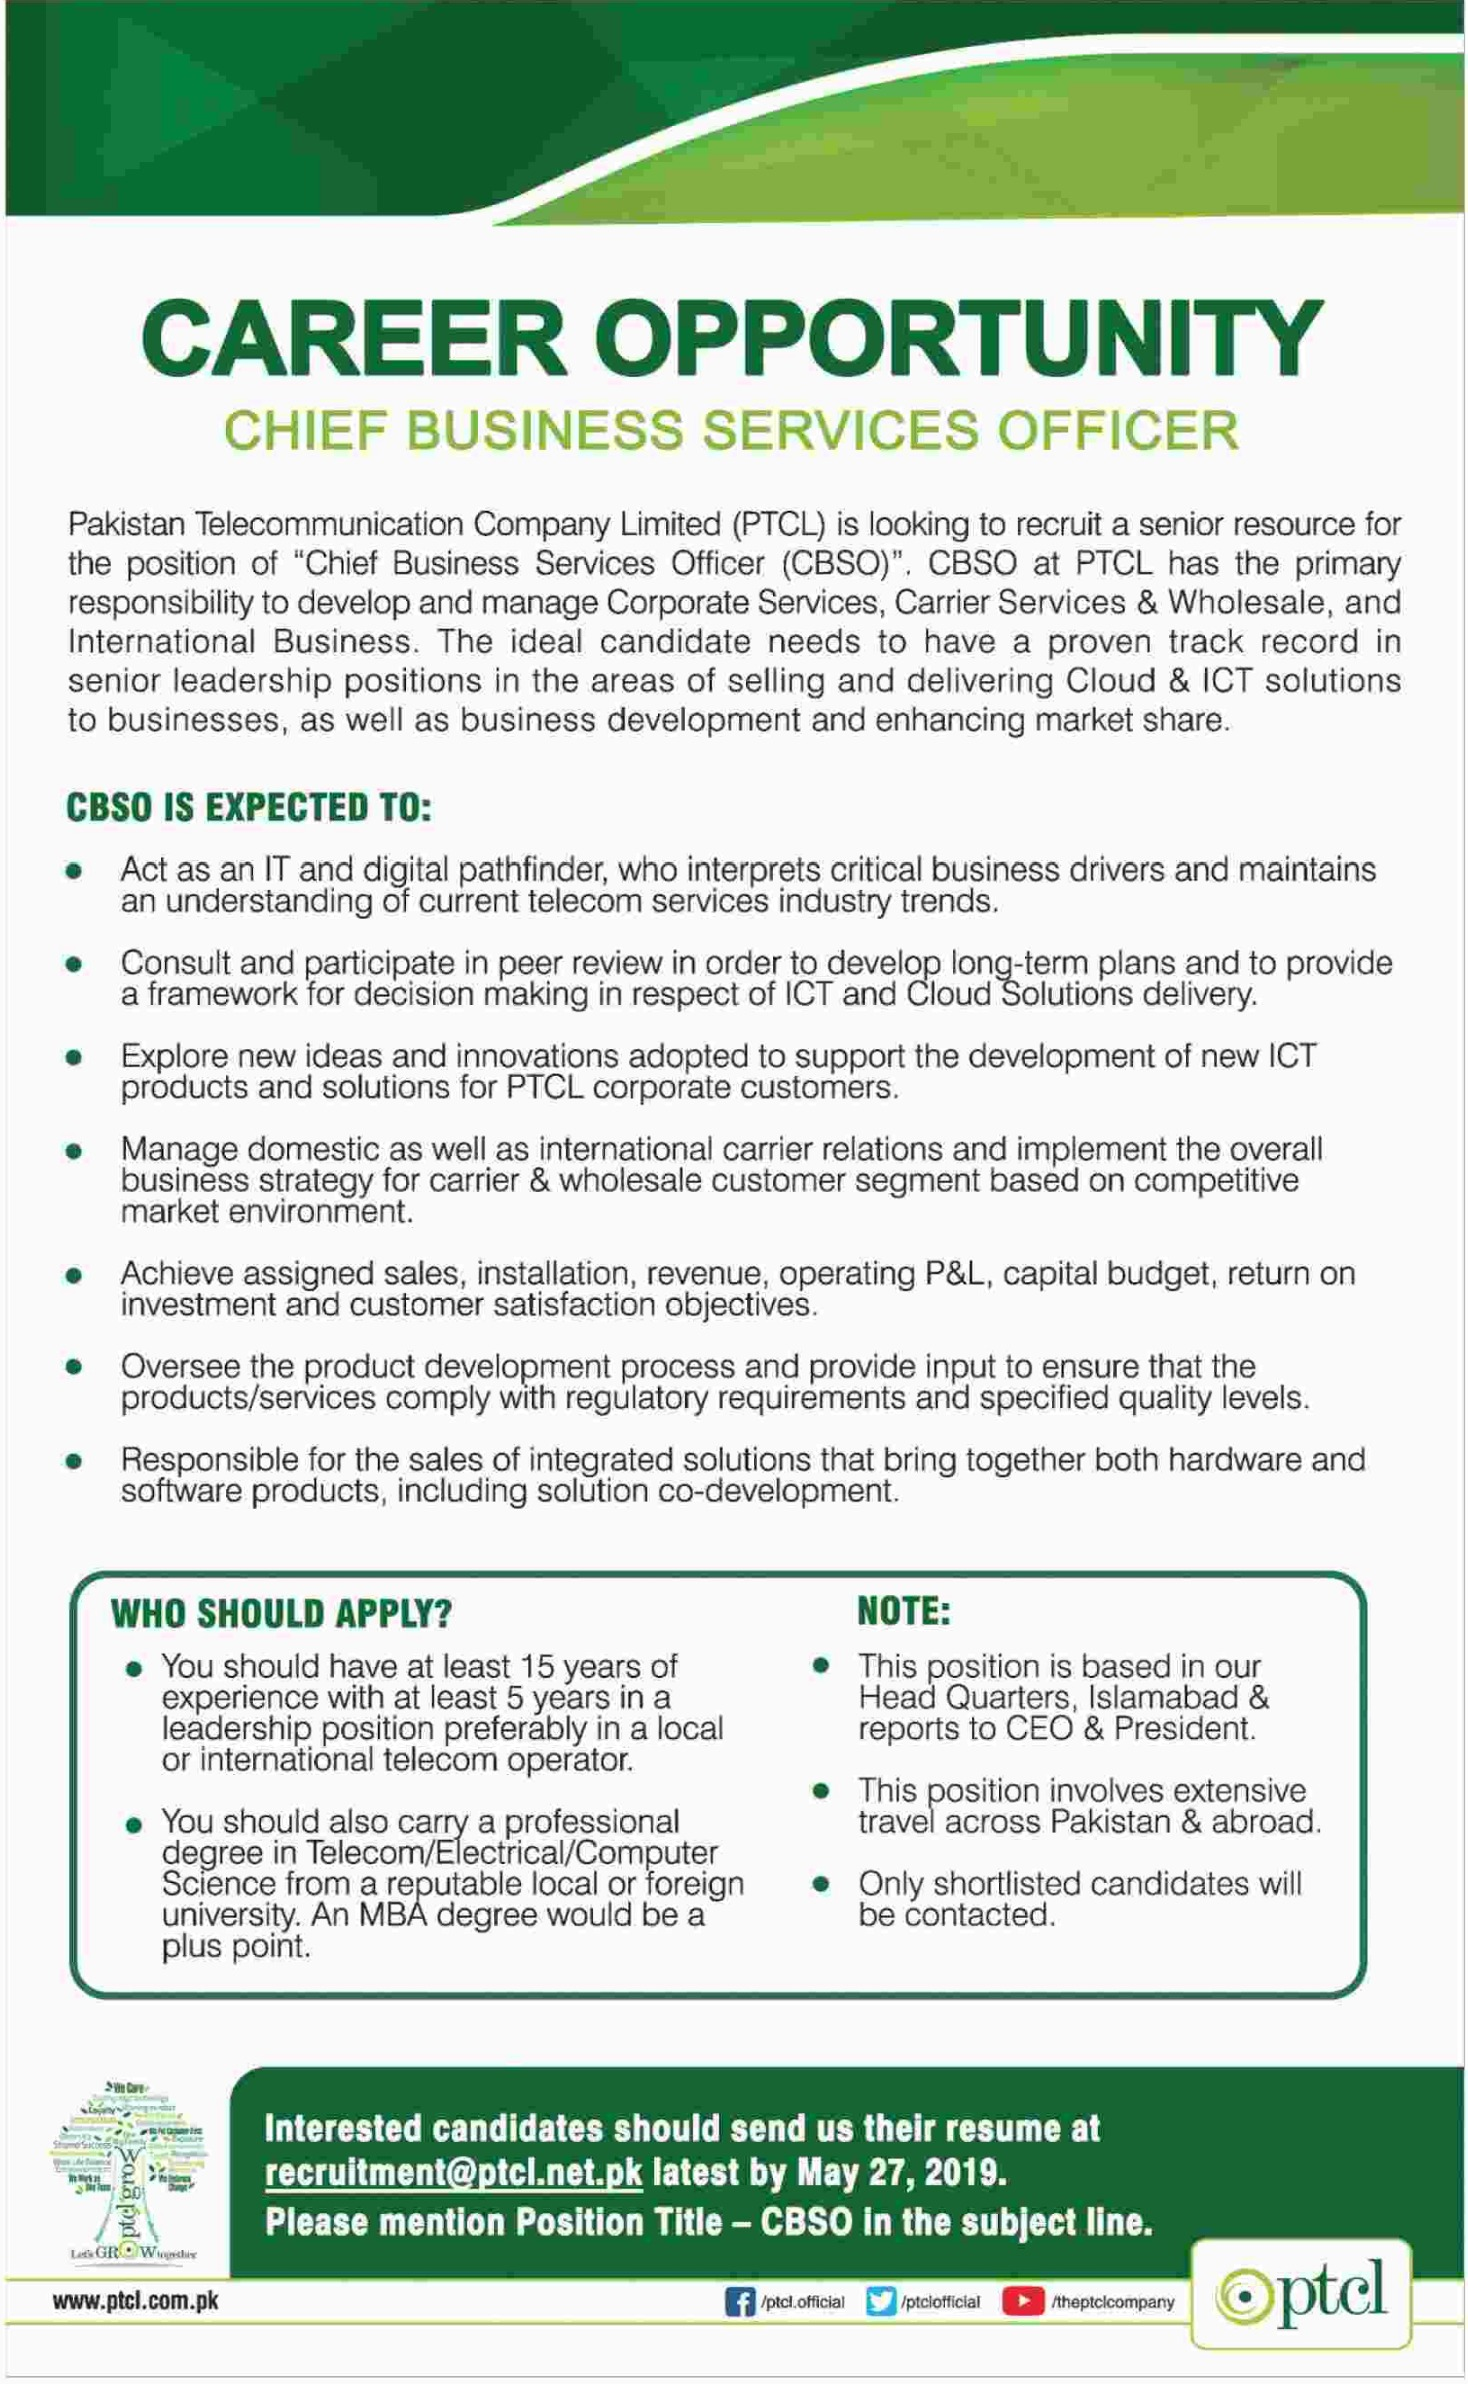 Join PTCL as Chief Business Services Officer 2019